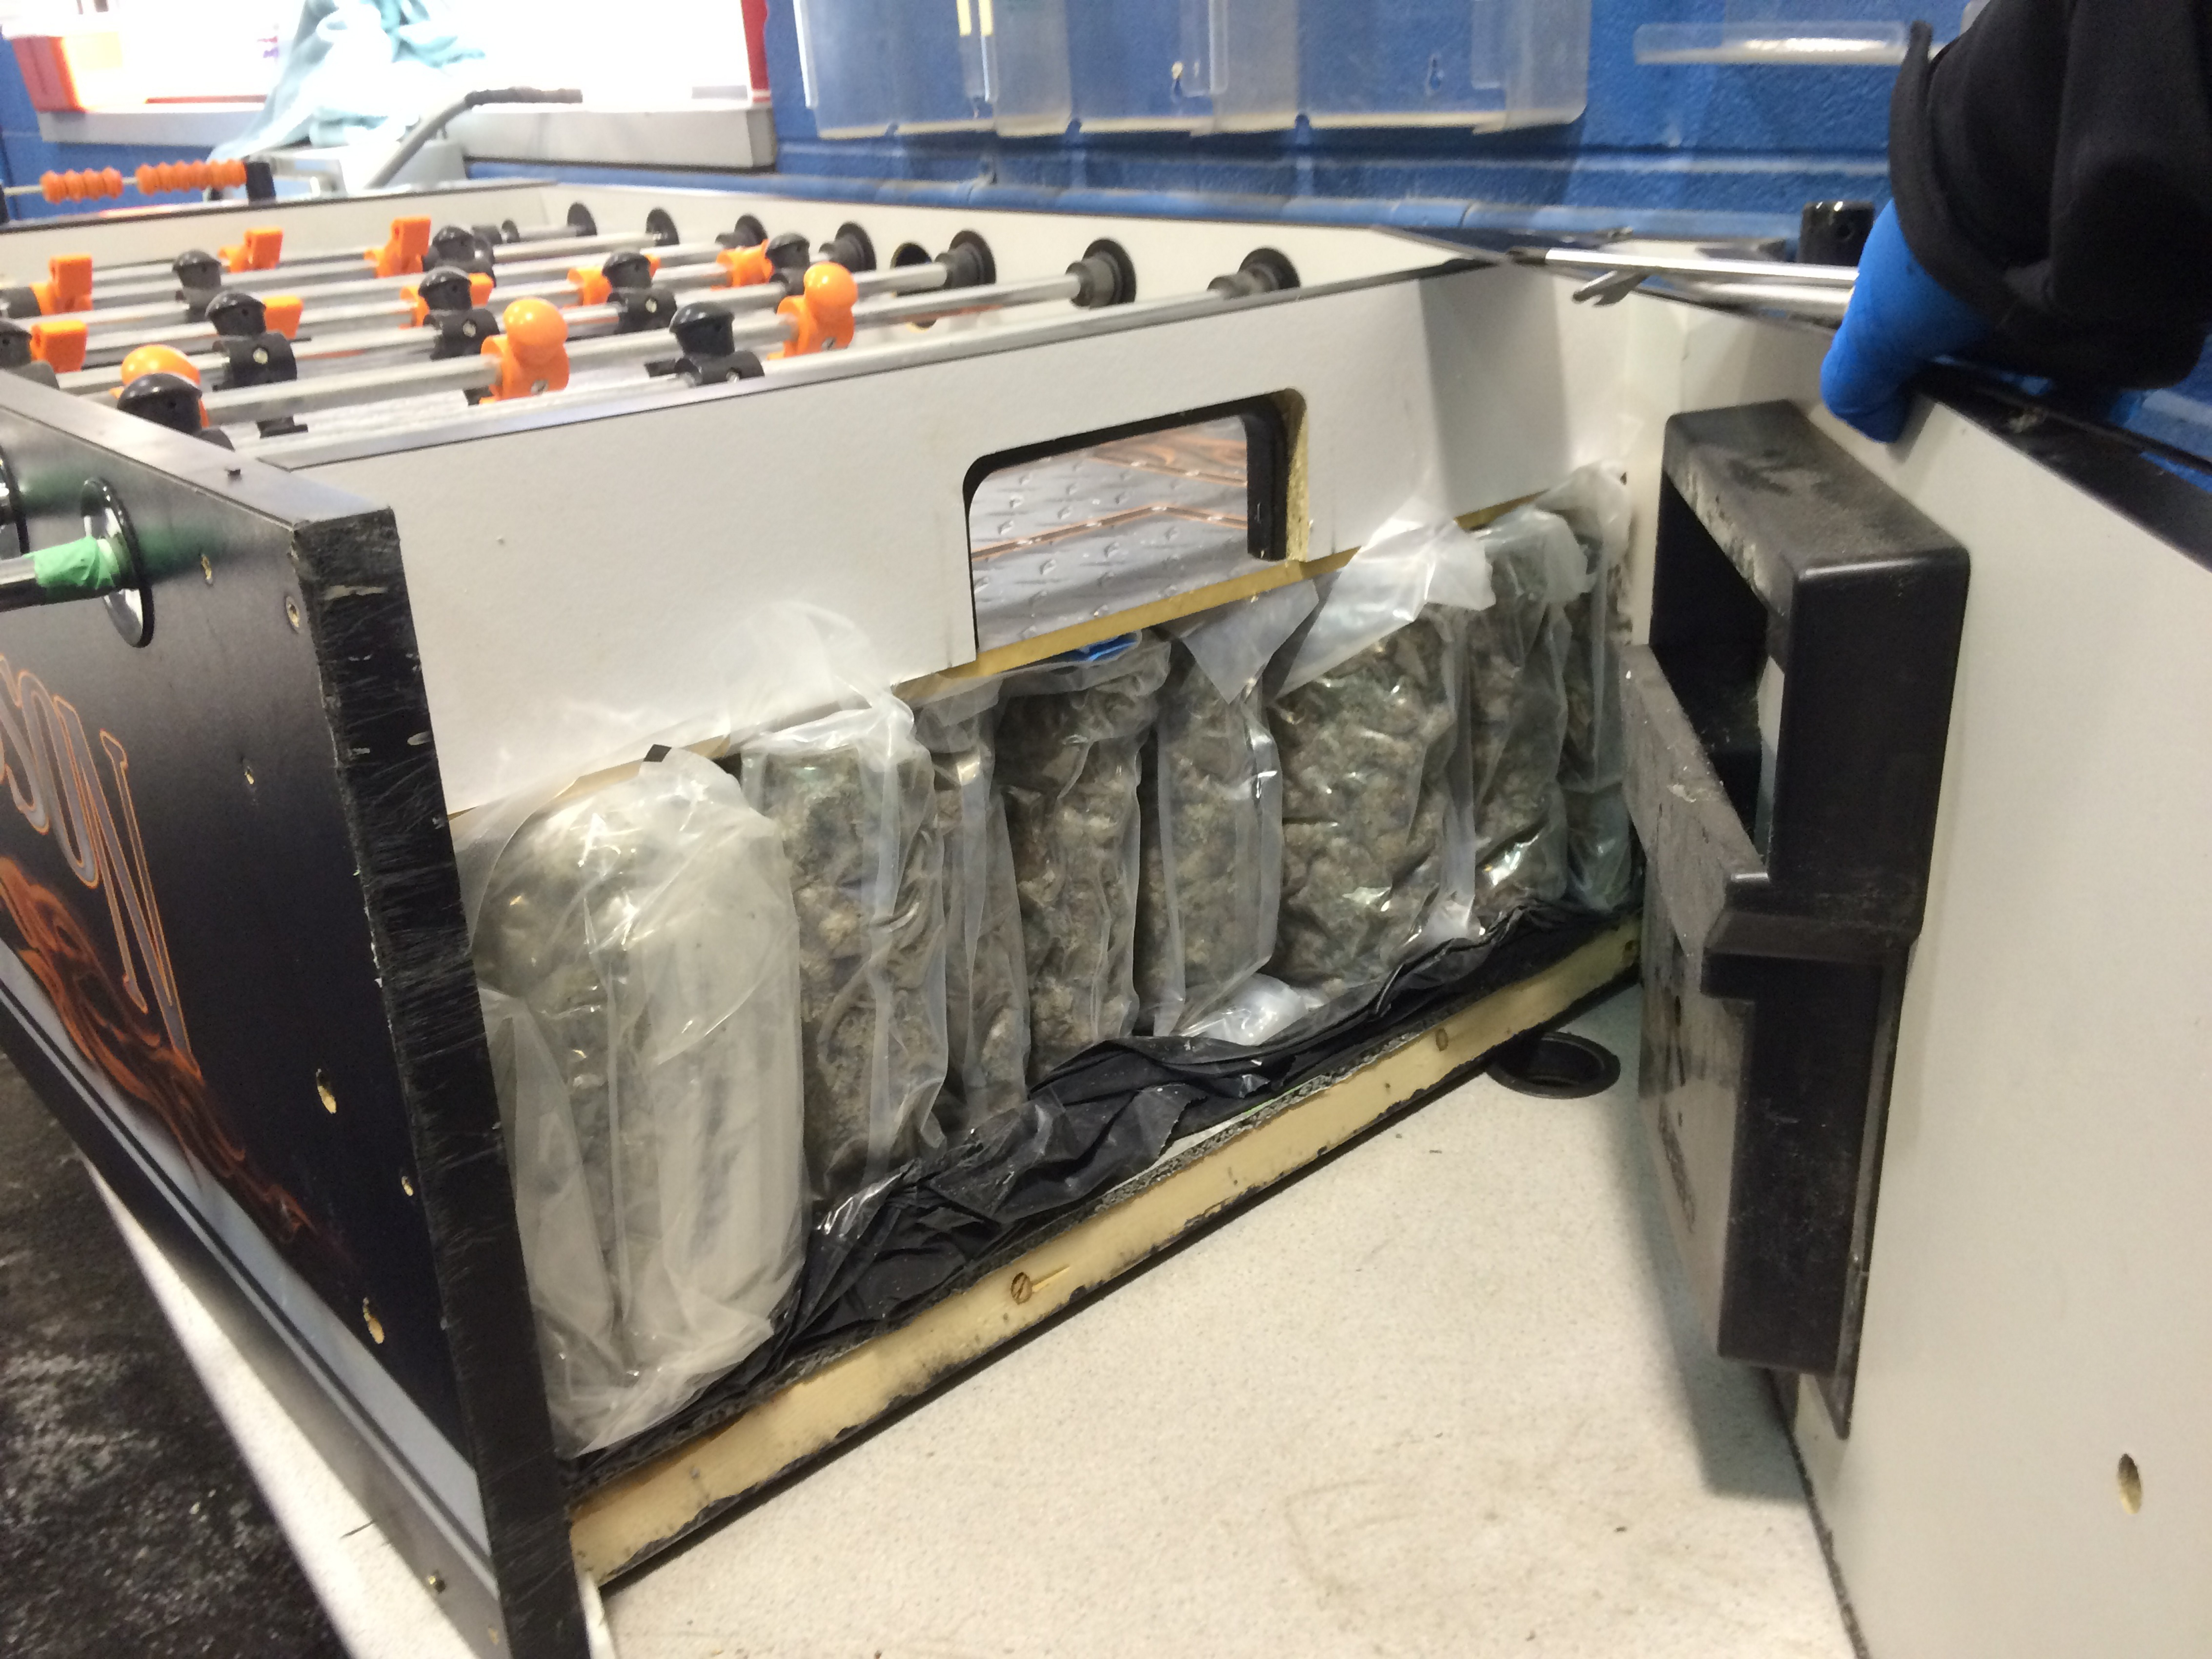 More than 50 pounds of marijuana was found hidden inside this foosball table when it was found in van at border crossing Jan. 13. (Photo courtesy of U.S. Customs and Border Protection Office)